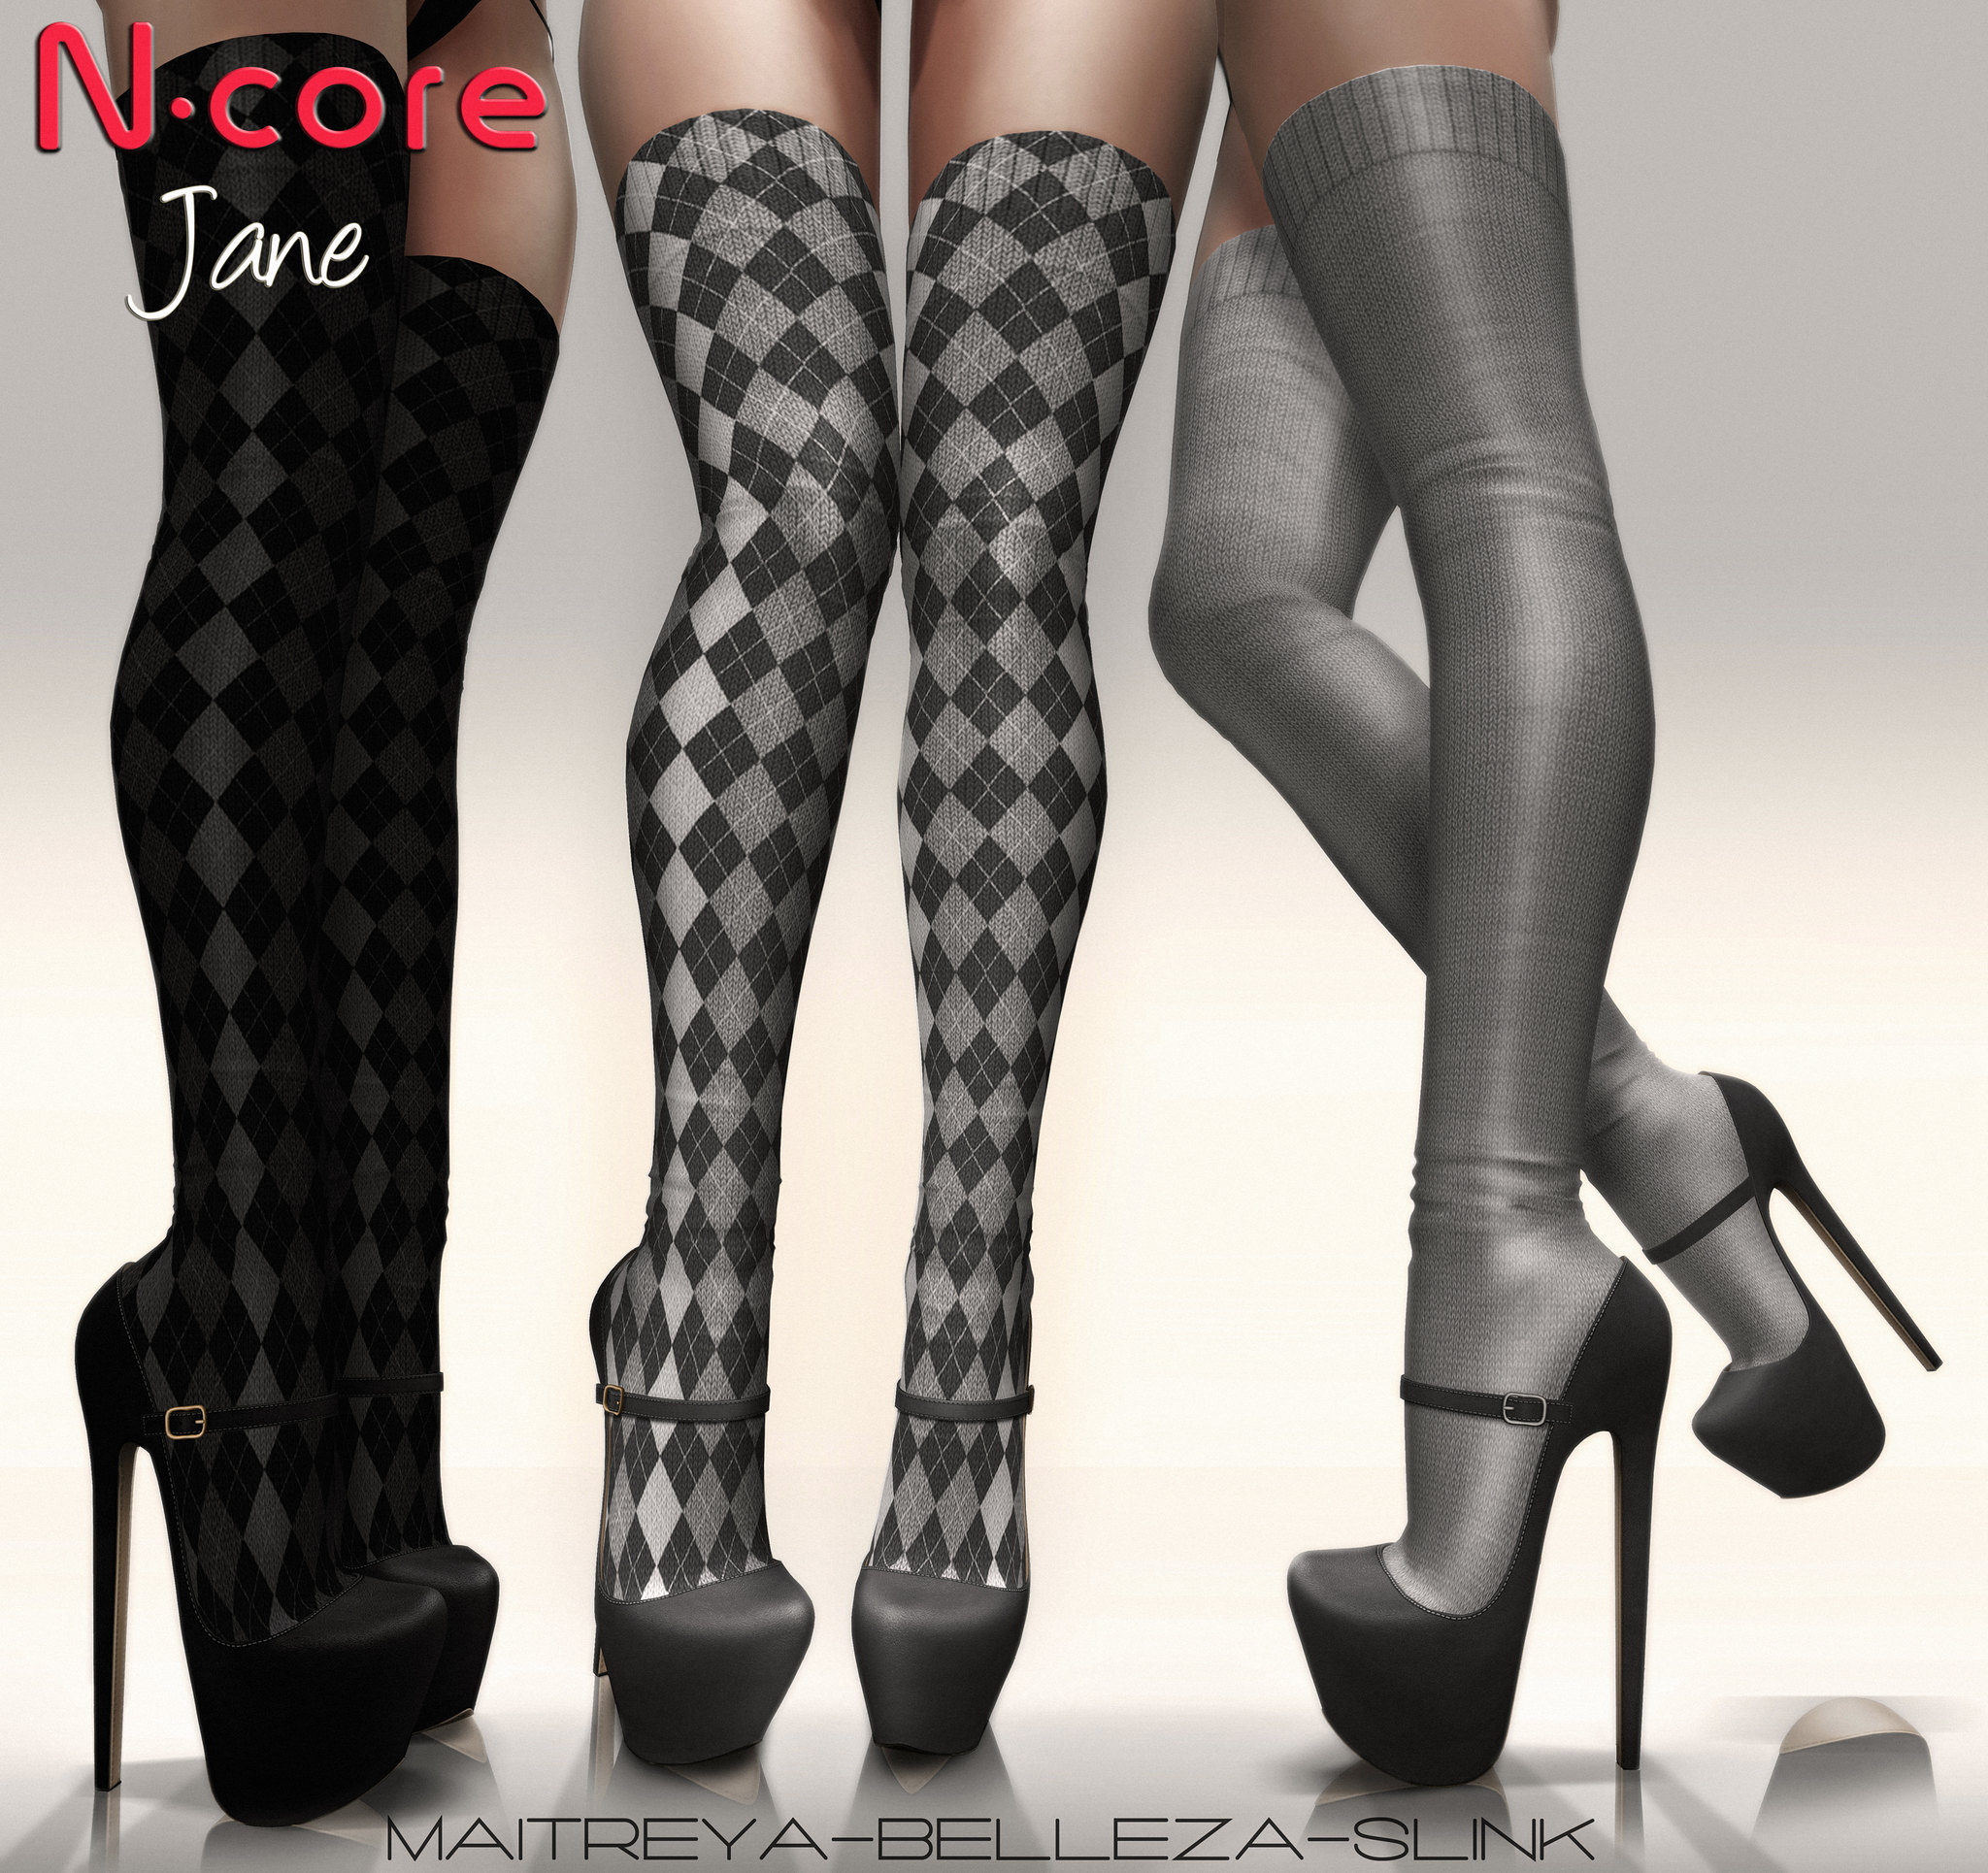 N-core JANE @ Mesh Body Addicts (Coming August 1st)